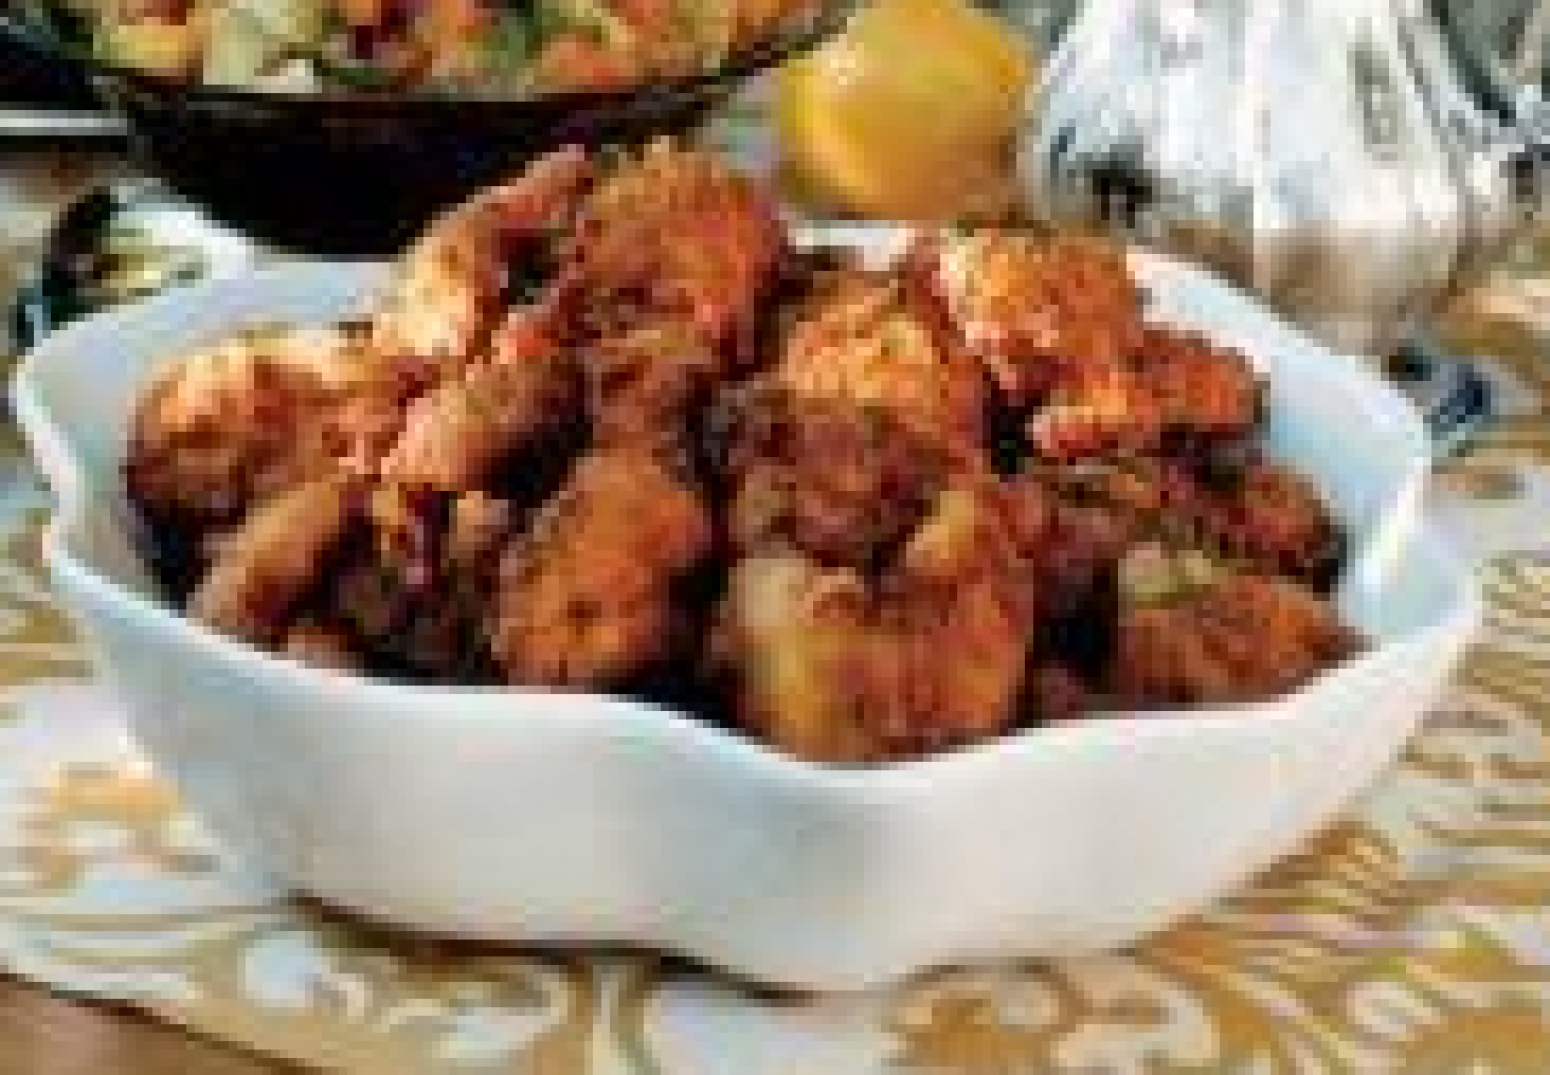 Combine 4 quarts water and salt in a Dutch oven, stirring until the salt dissolves. Remove and discard giblets and neck from chicken. Rinse chicken with cold water; pat dry. Trim excess fat. Add chicken to salt mixture; cover and refrigerate 8 hours or overnight.